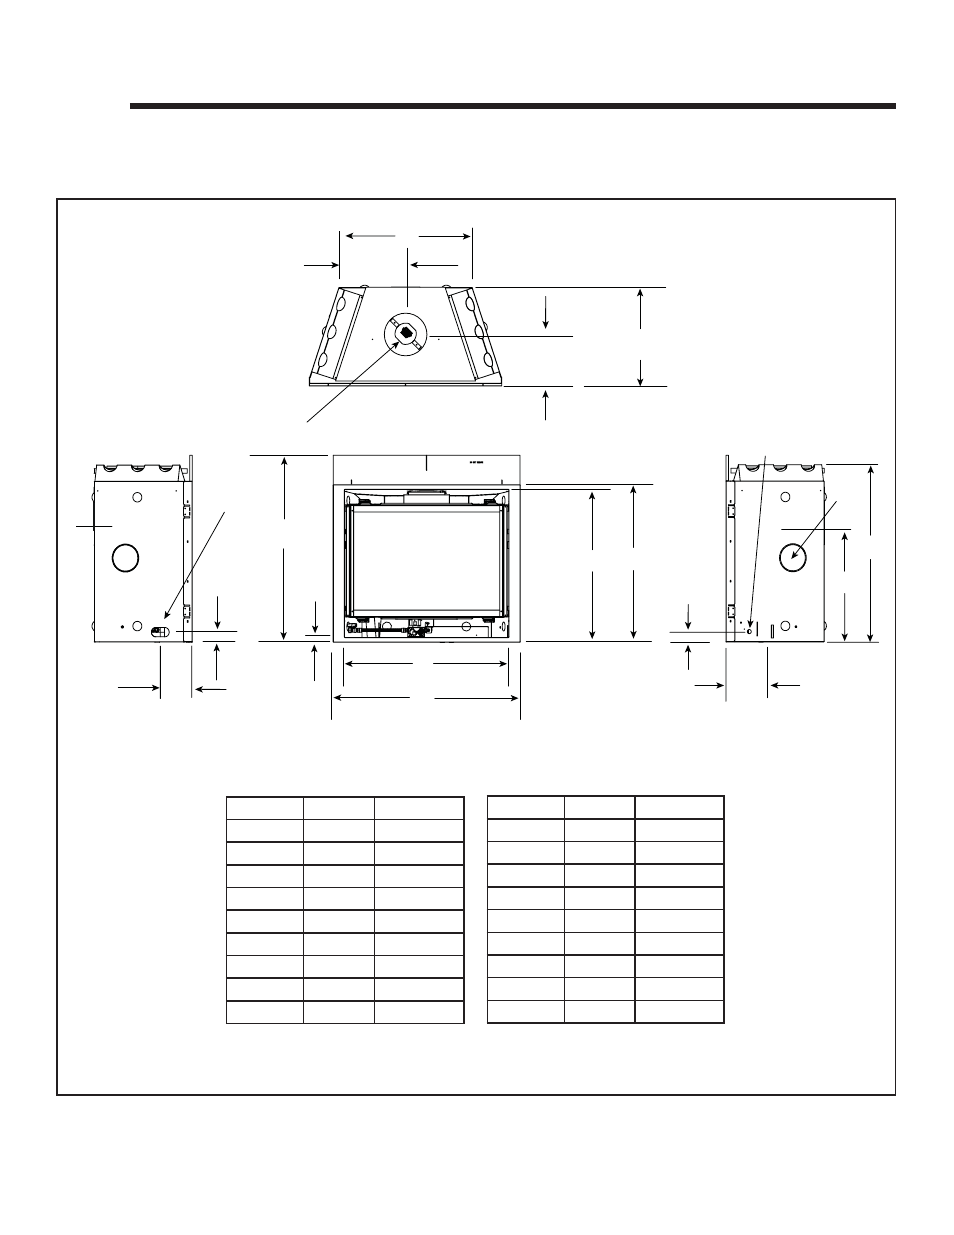 Reference materials | Heat & Glo Fireplace 6000GLX-IPILP-S/-R User